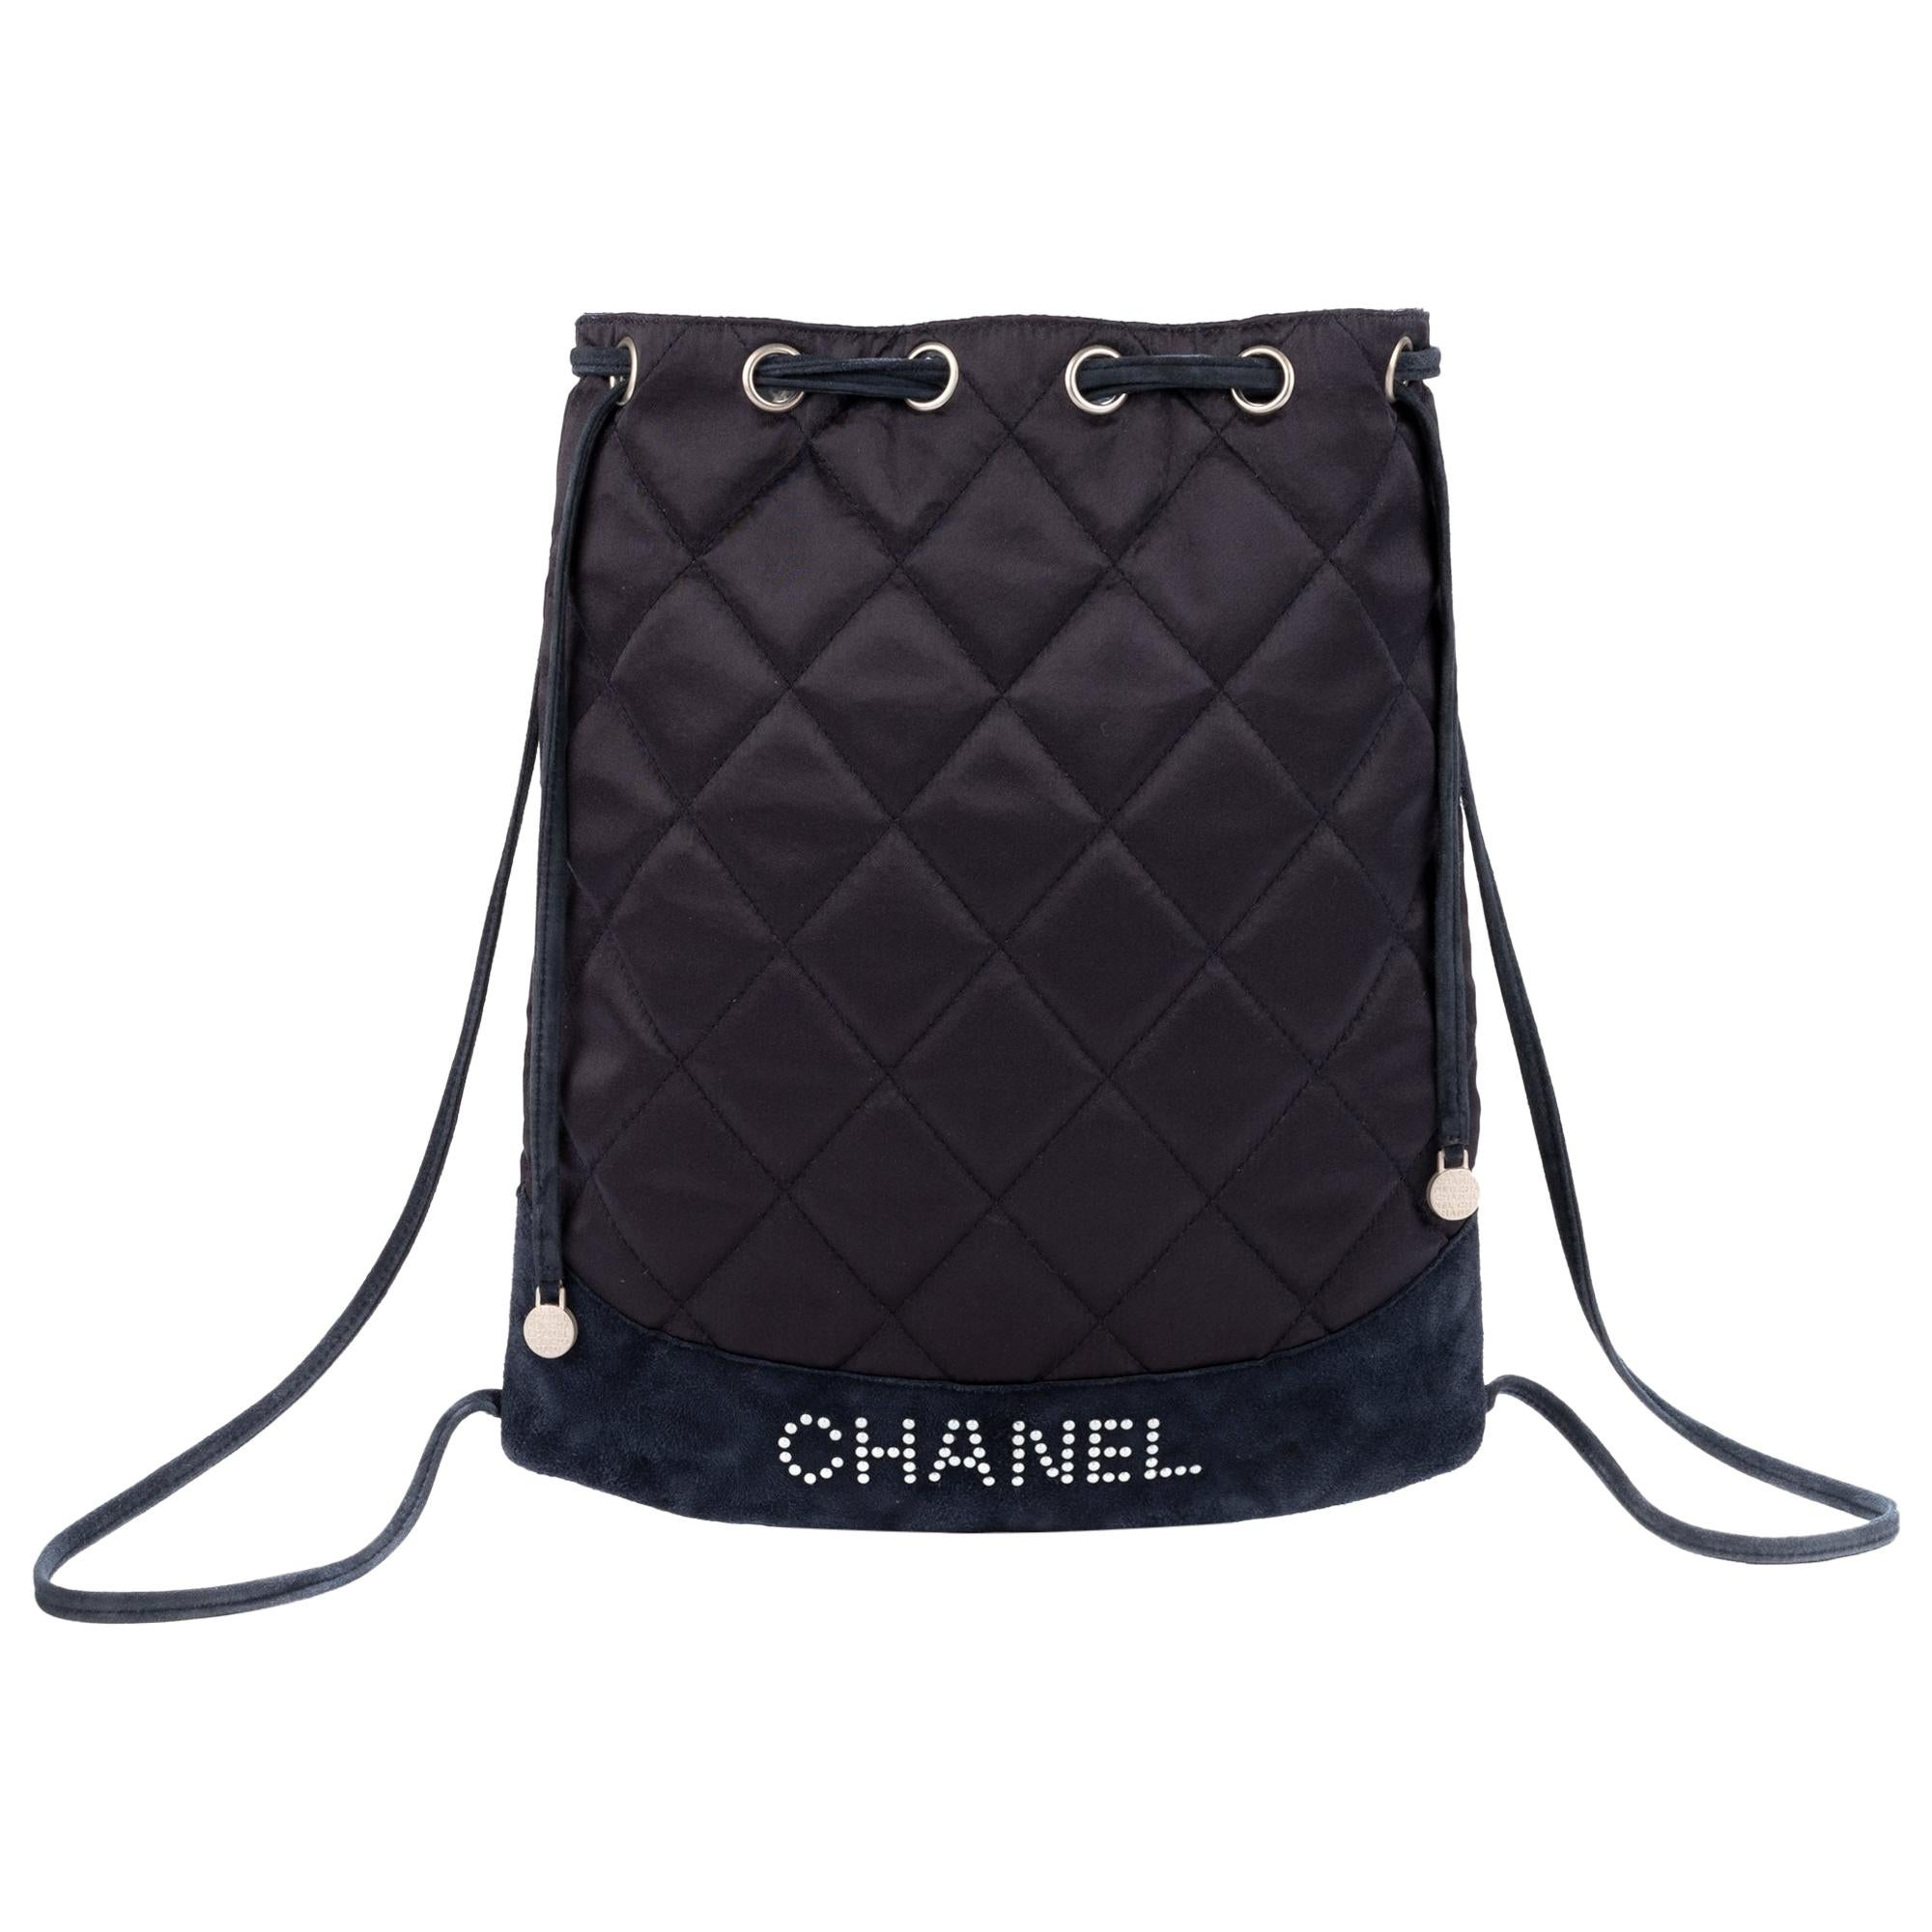 9b123eda40cd Vintage Chanel: Bags, Clothing & More - 8,216 For Sale at 1stdibs